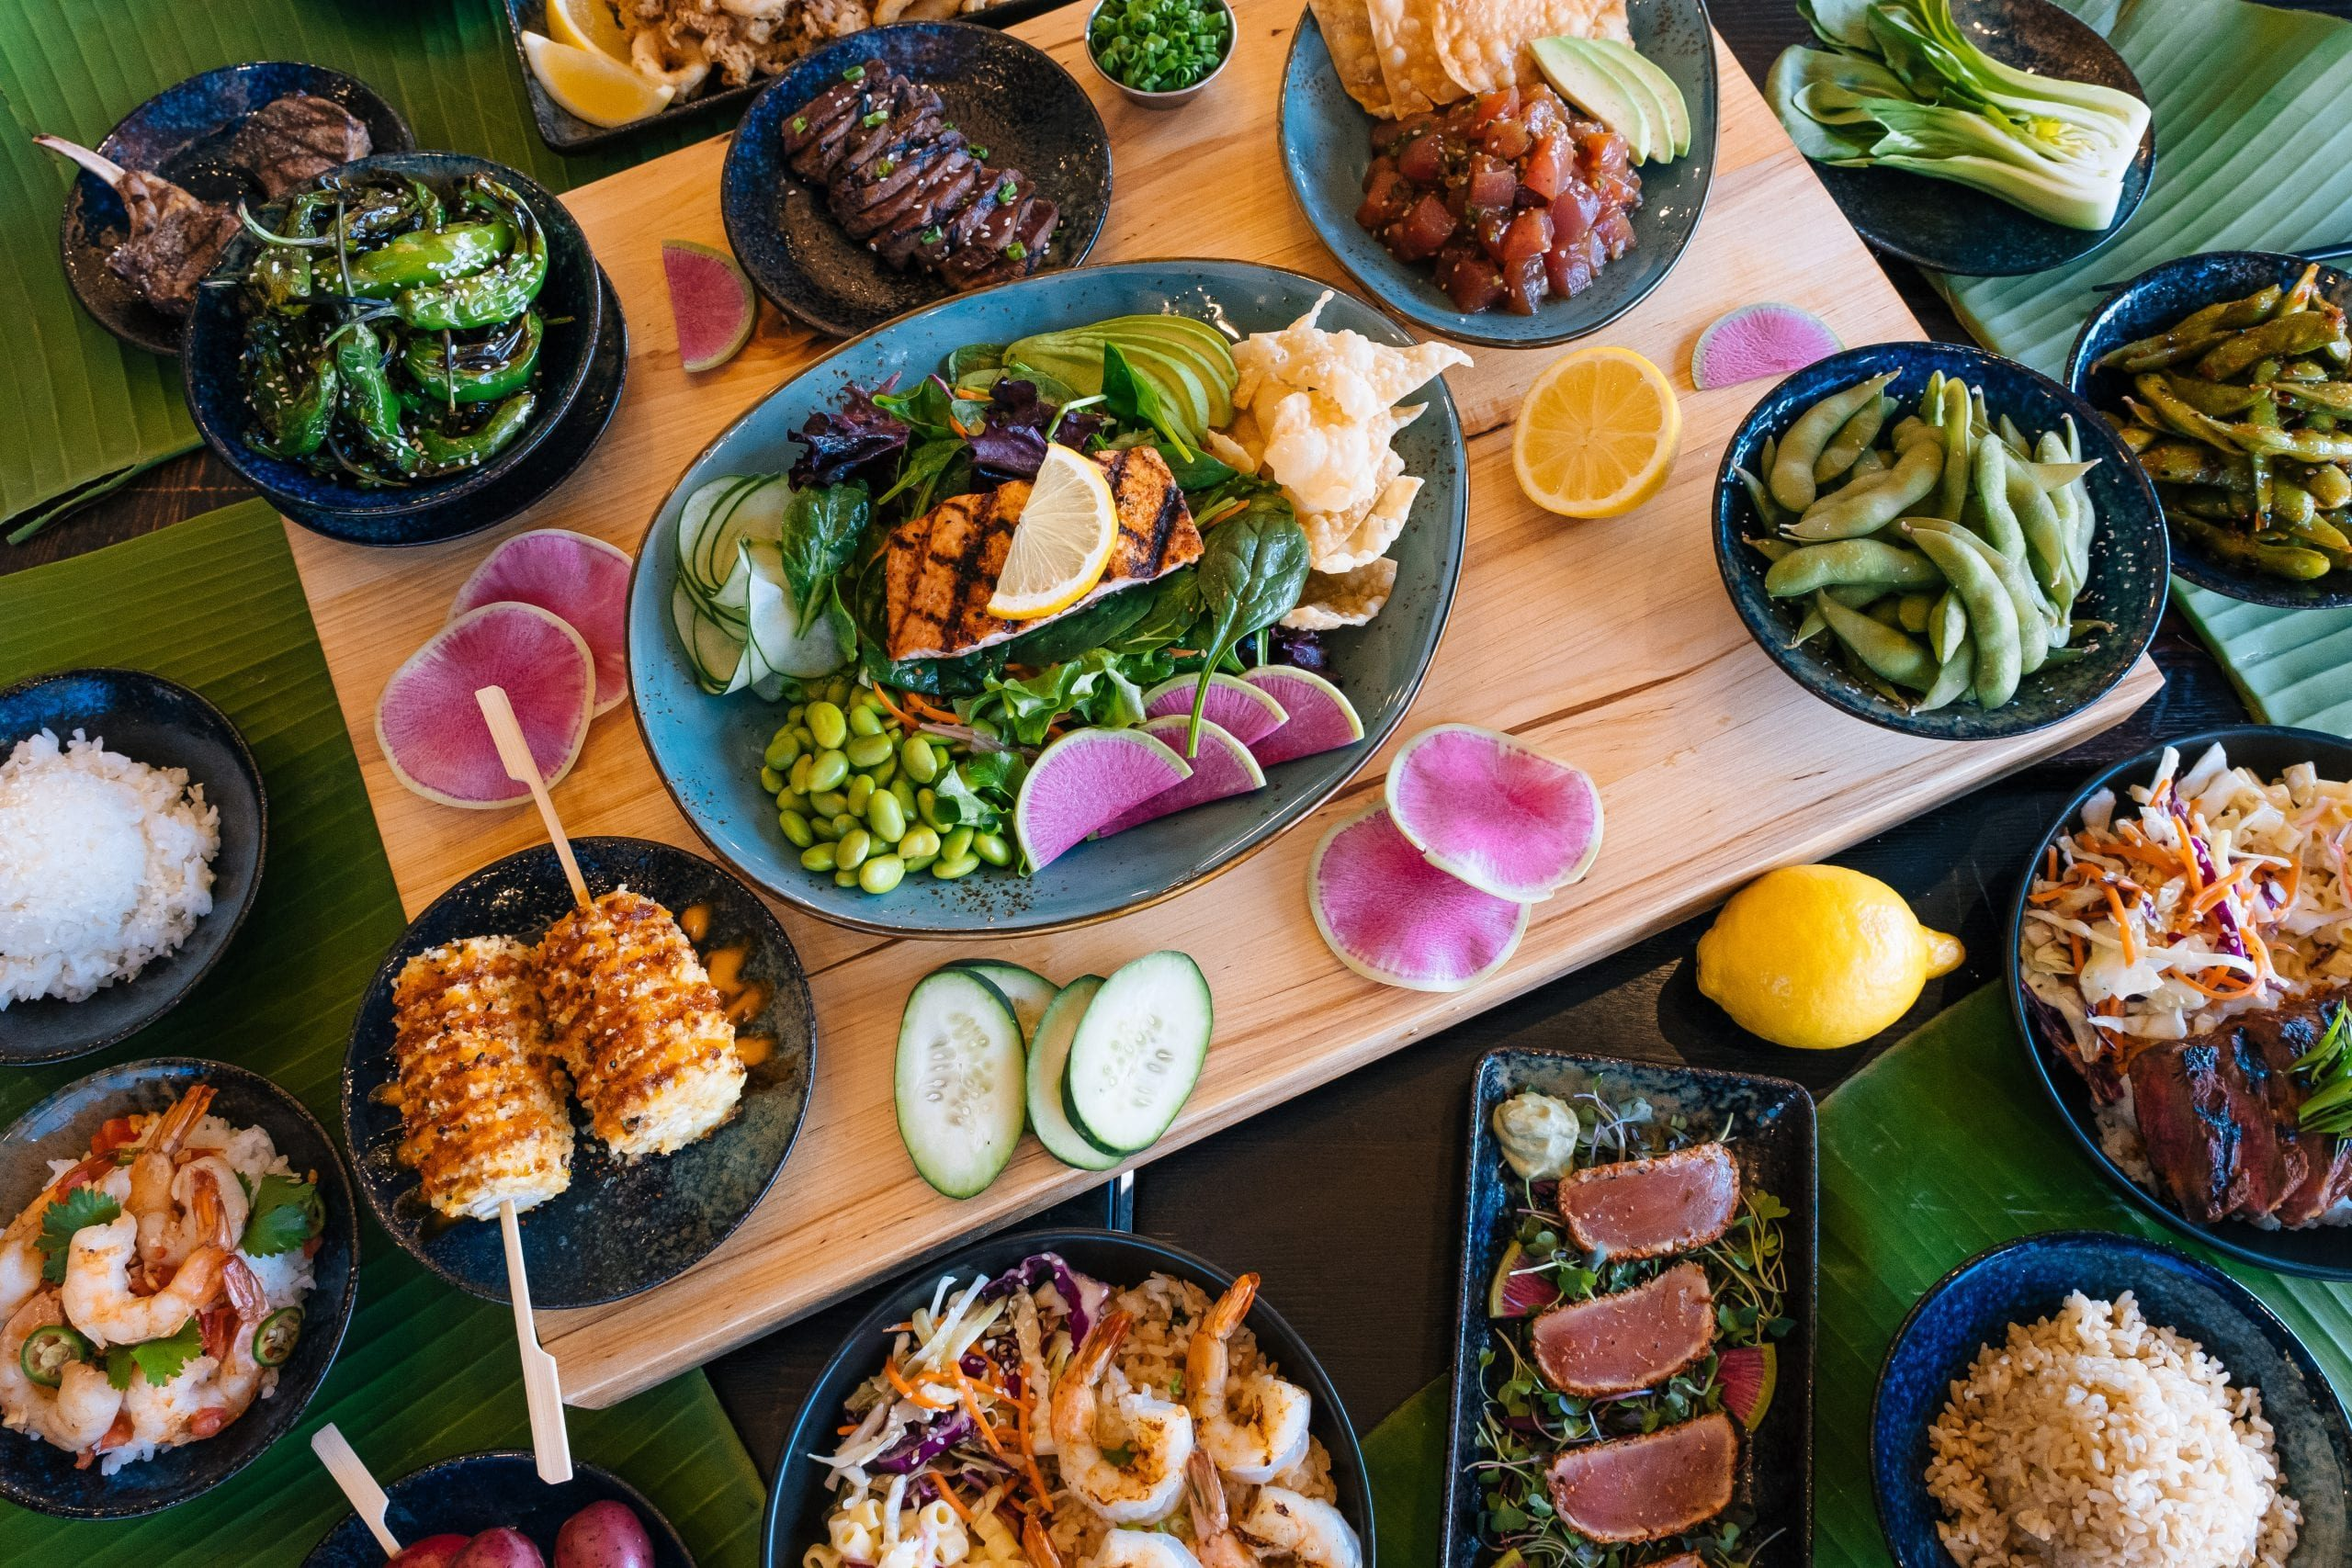 Makai Food and Poke Spread out on a table